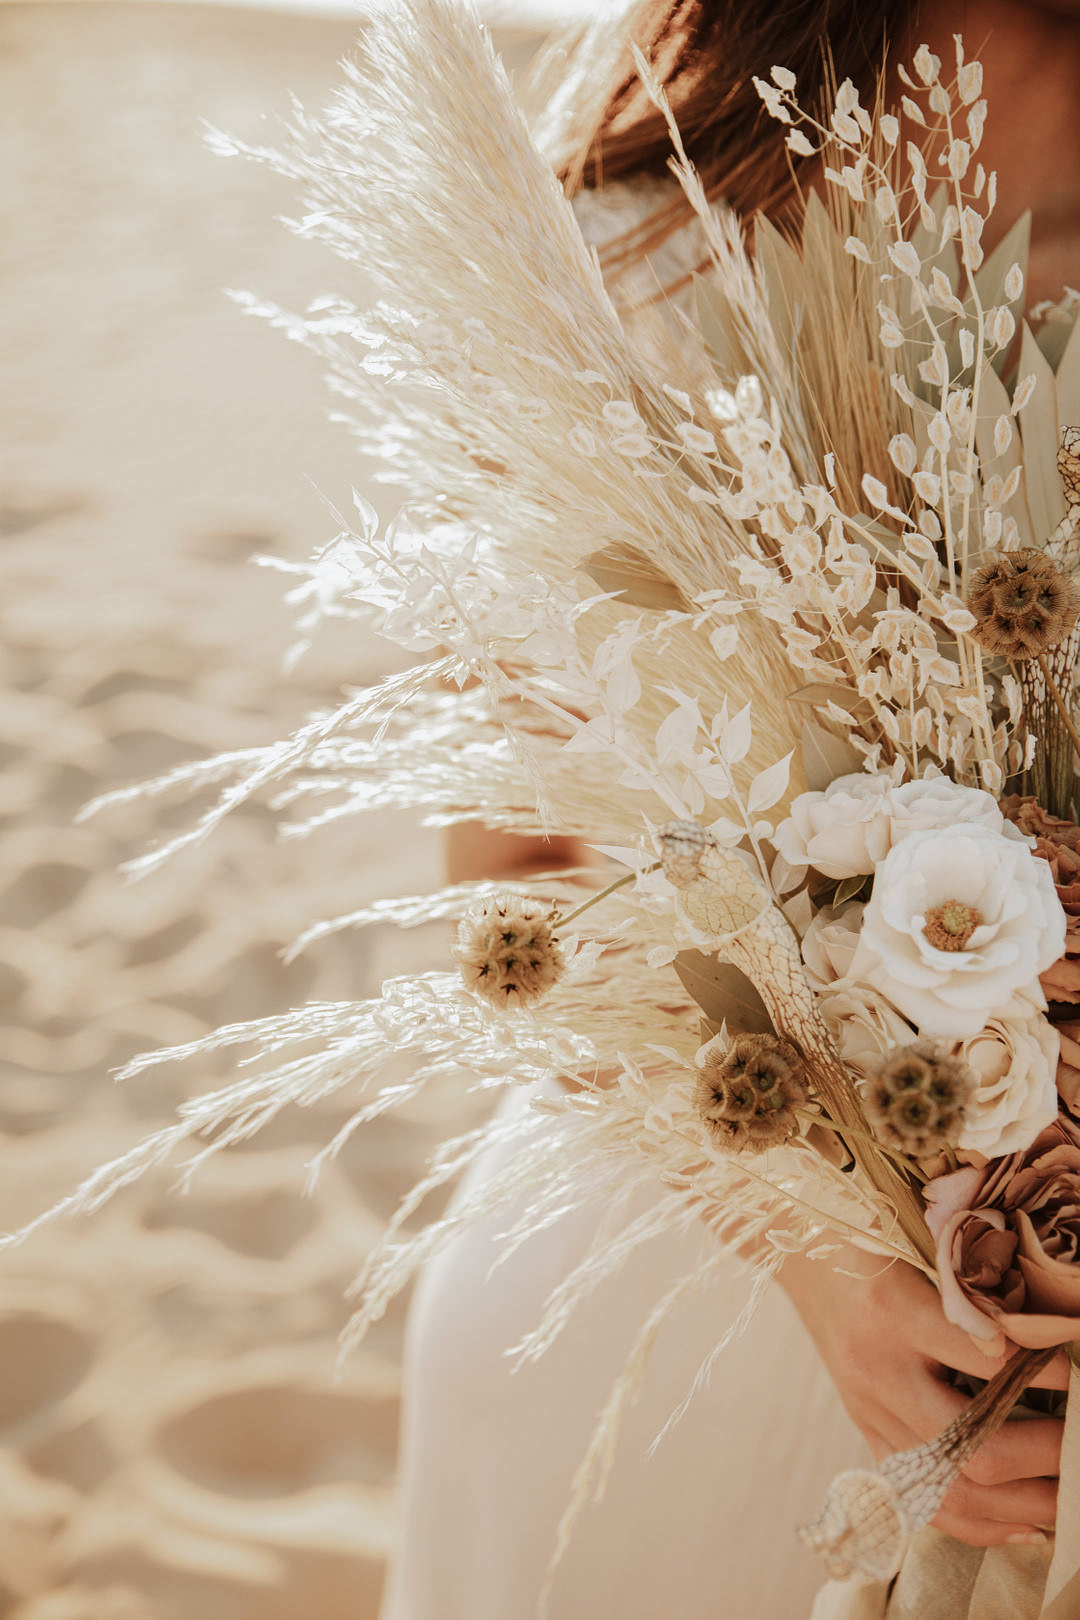 Bouquet Flowers Bride Bridal Dried Flowers Grass Palm Sand Dunes Wedding Photos By Gayle